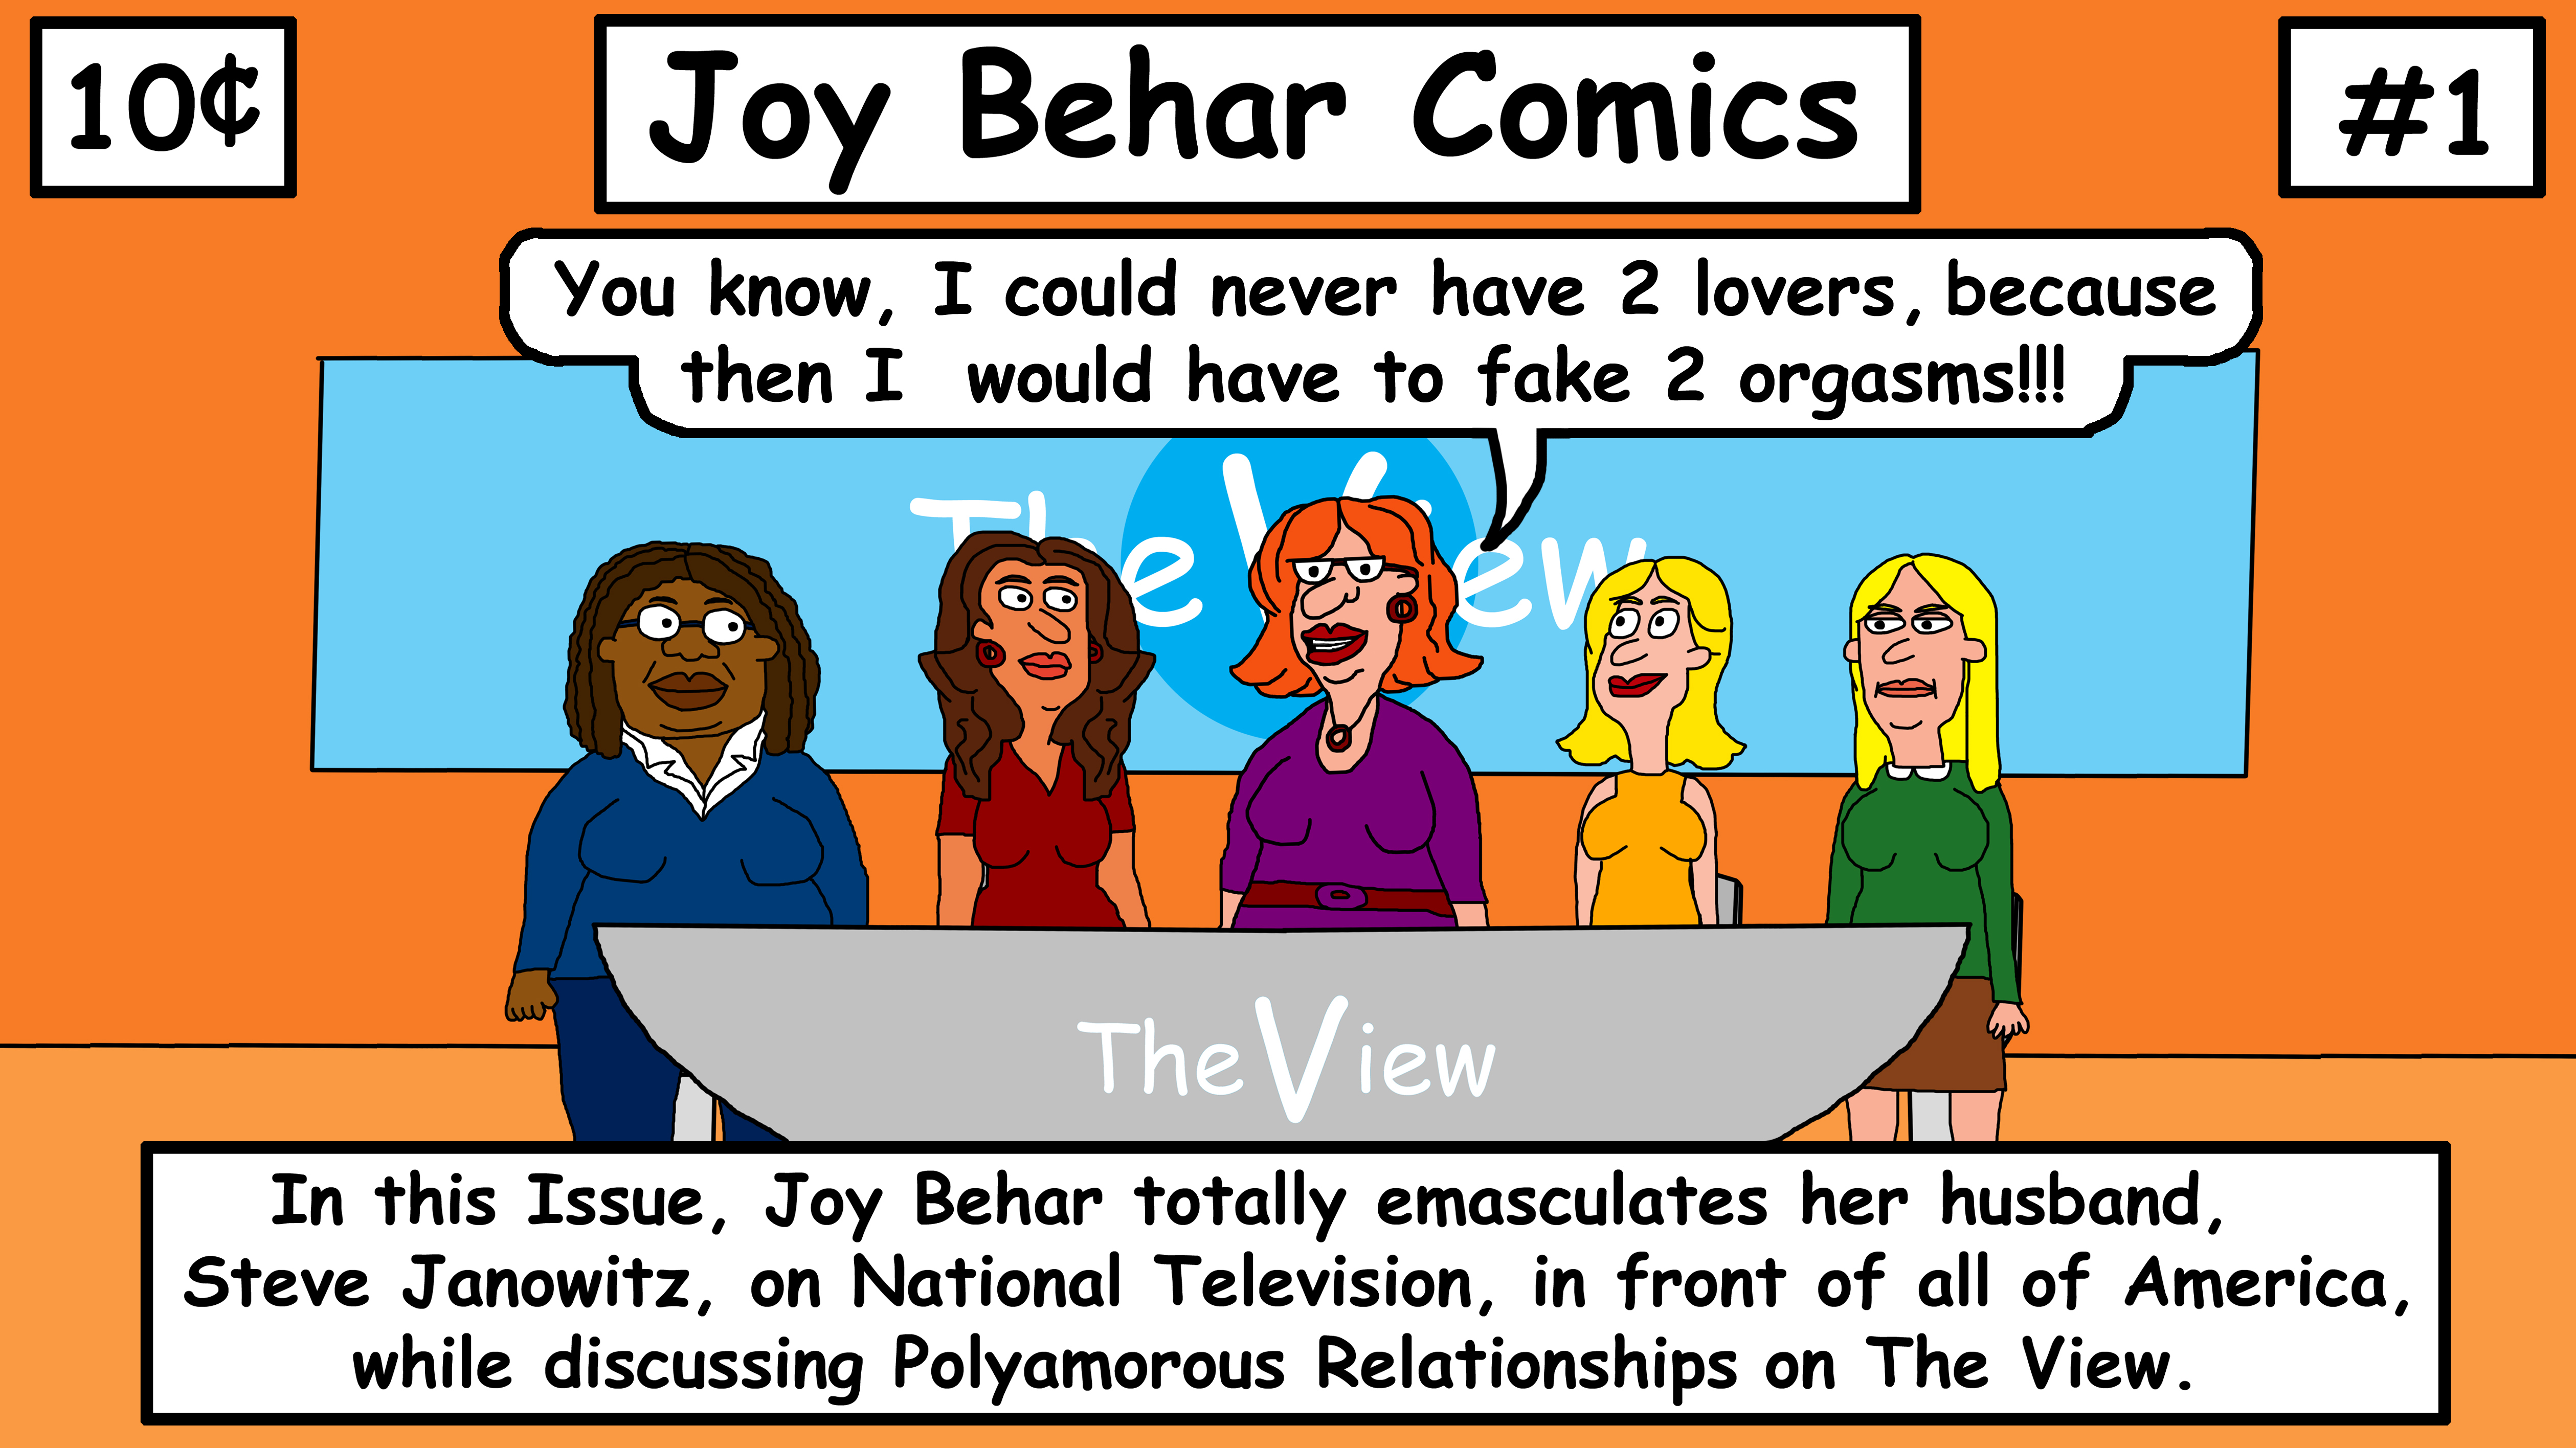 Joy Behard Comics #1